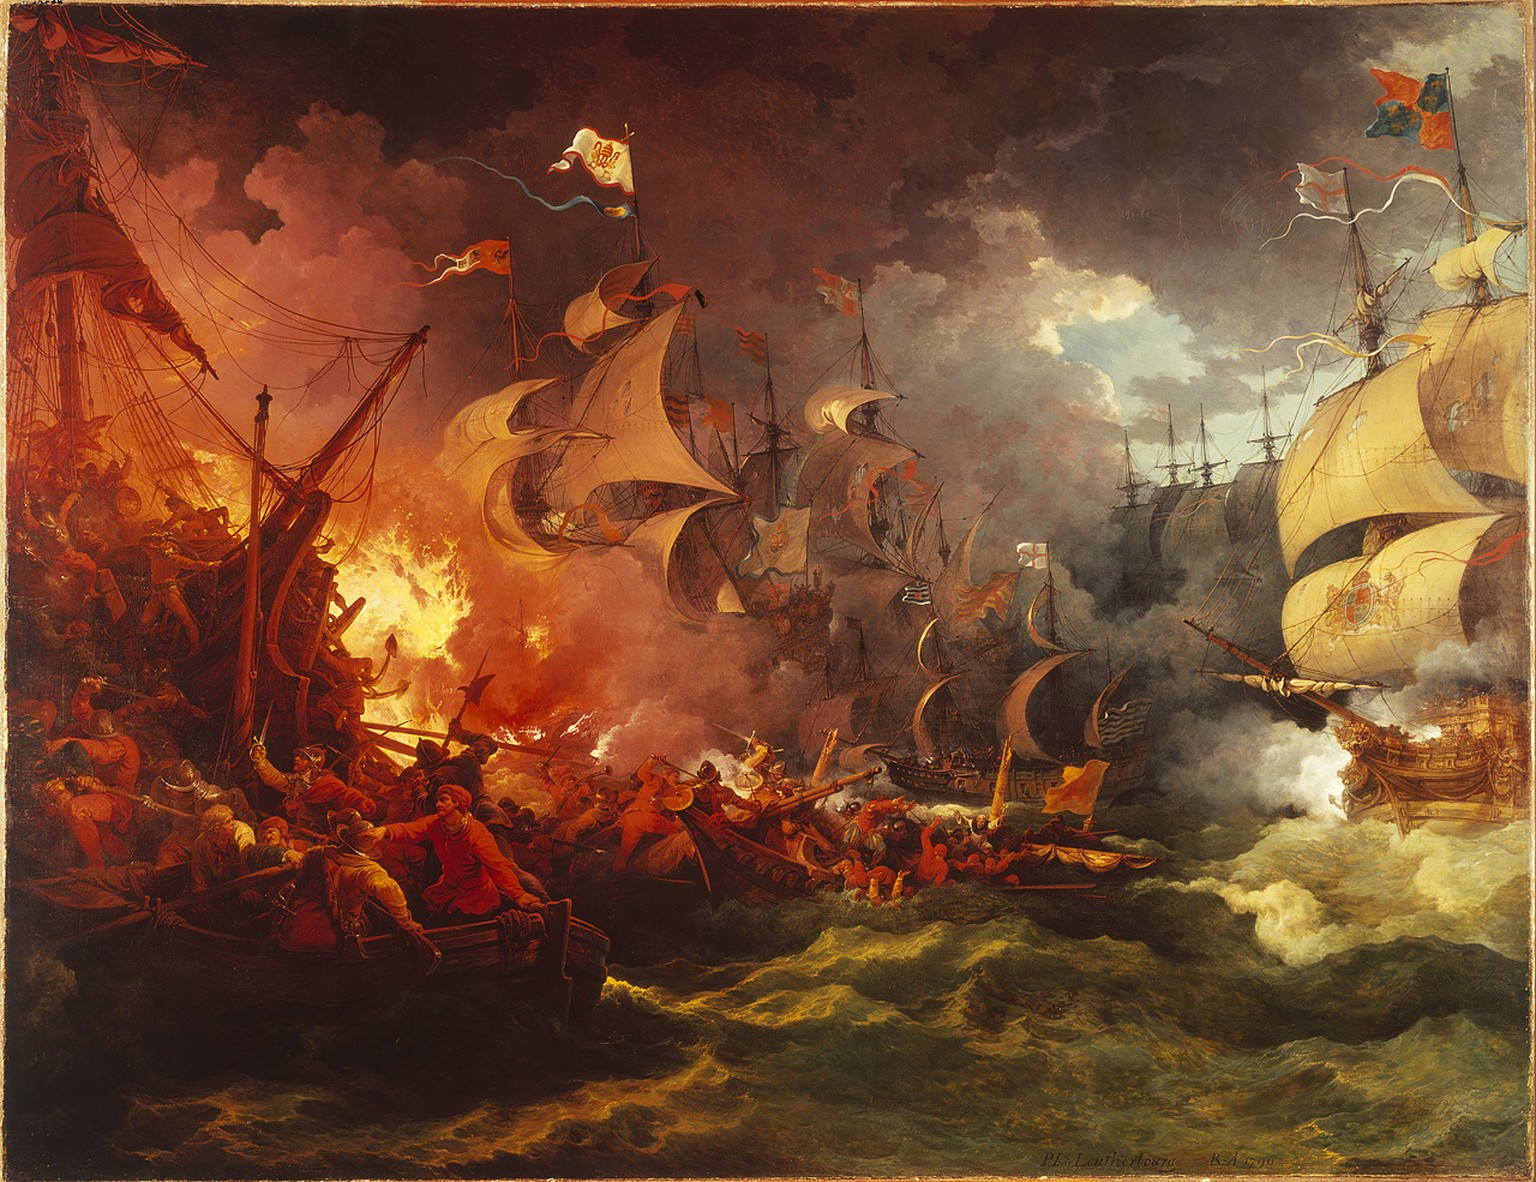 A theatrical interpretation of the Battle of Gravelines  Gemälde von Charles Fairborough, 1796, Defeat of the Spanish Armada, 8. Aug. 1588